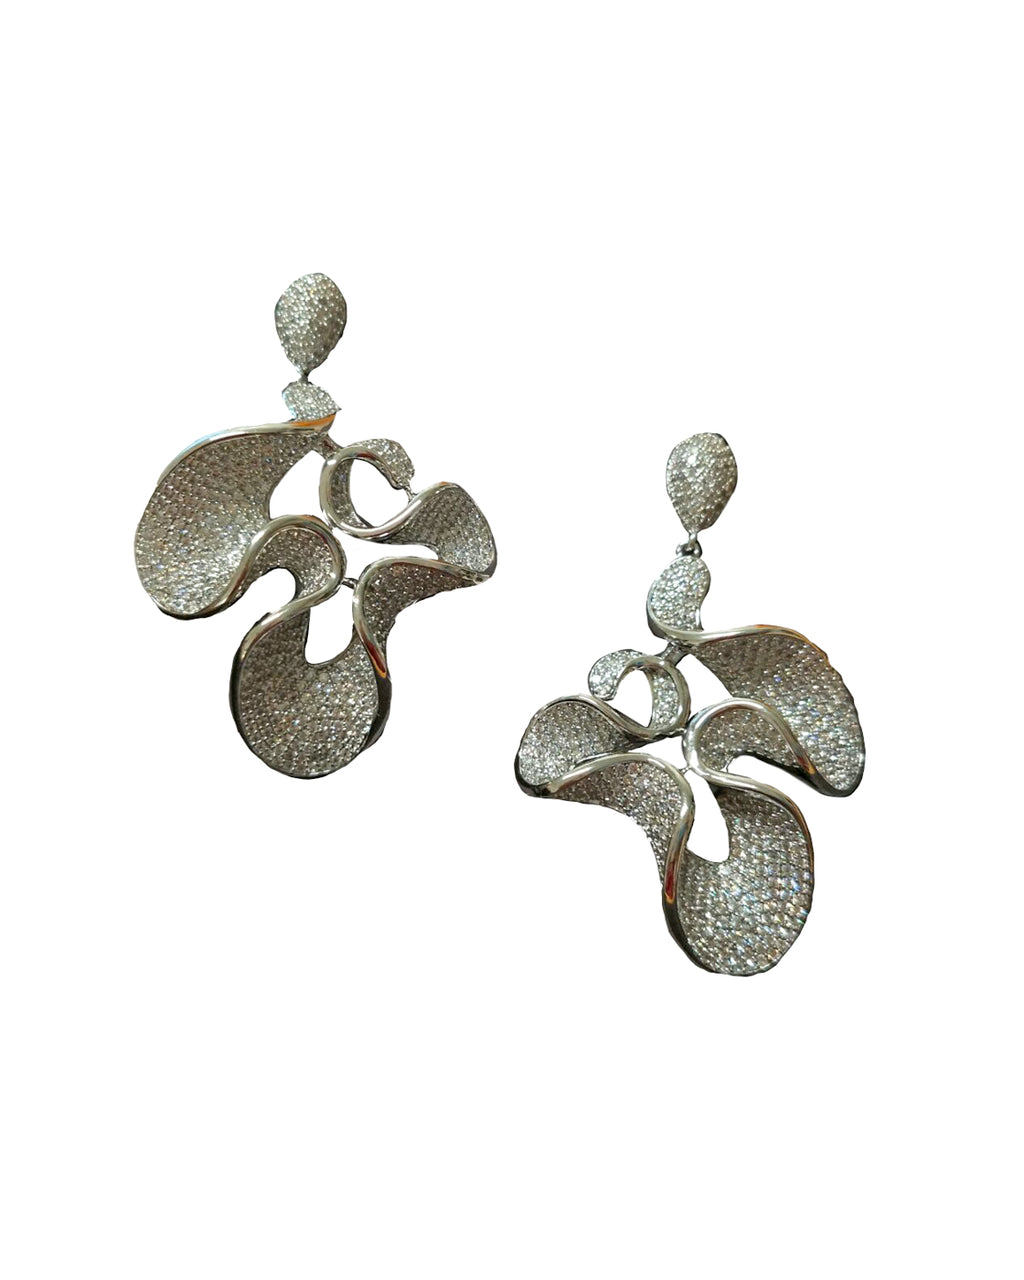 Crystal Wavy Earrings - Covetella - Covetella Dress Rentals